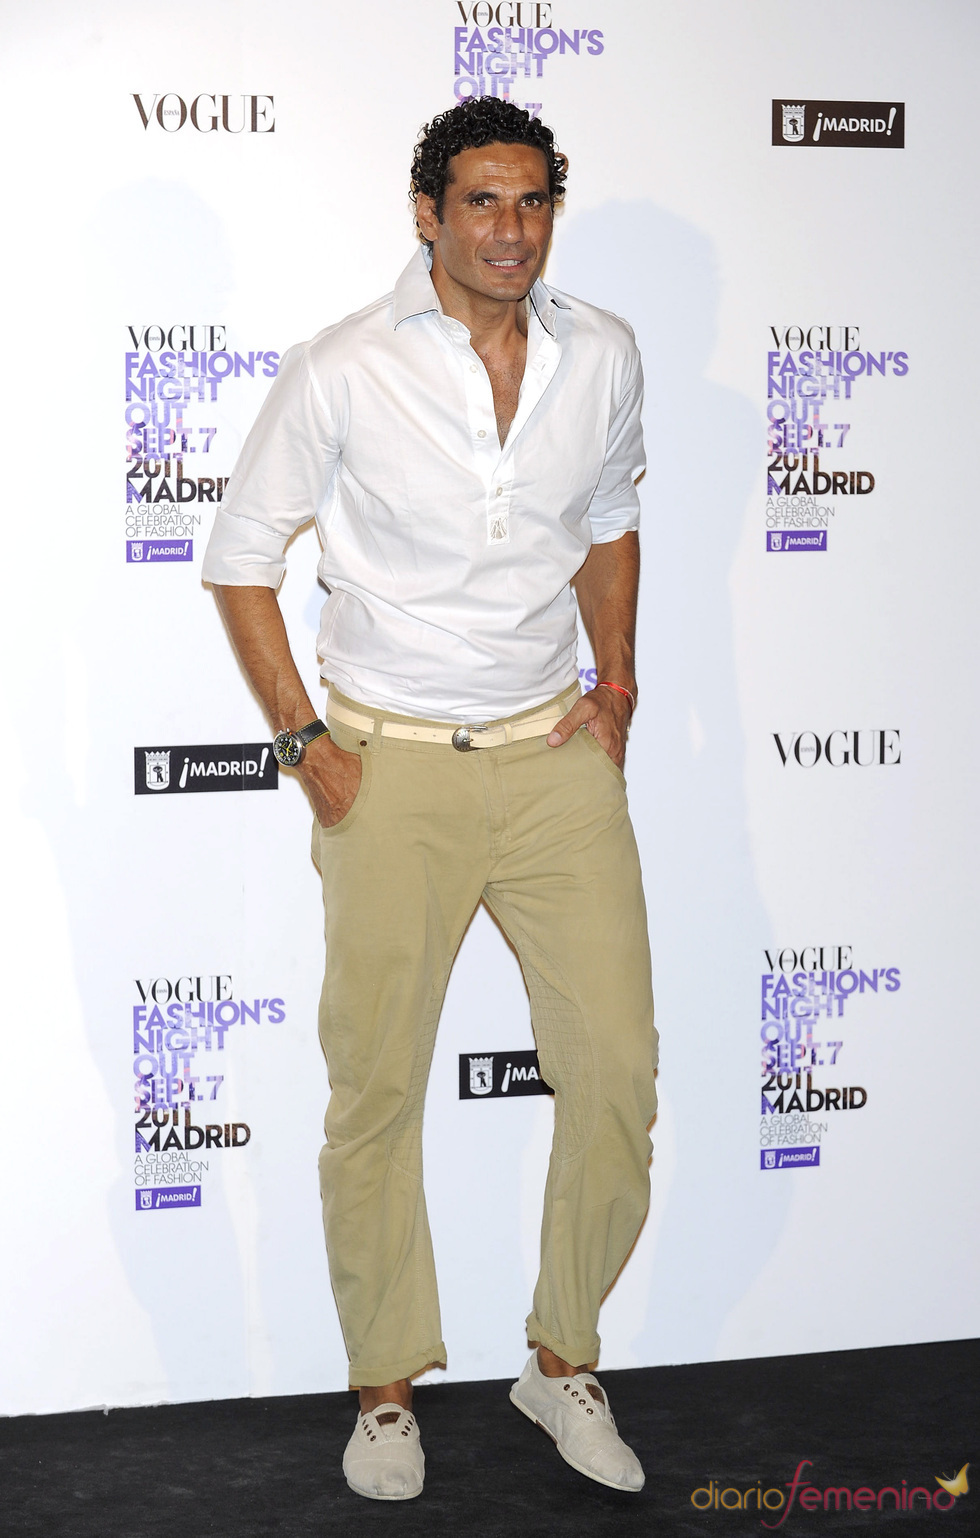 Óscar Higares durante la Vogue Fashion Night Out Madrid 2011